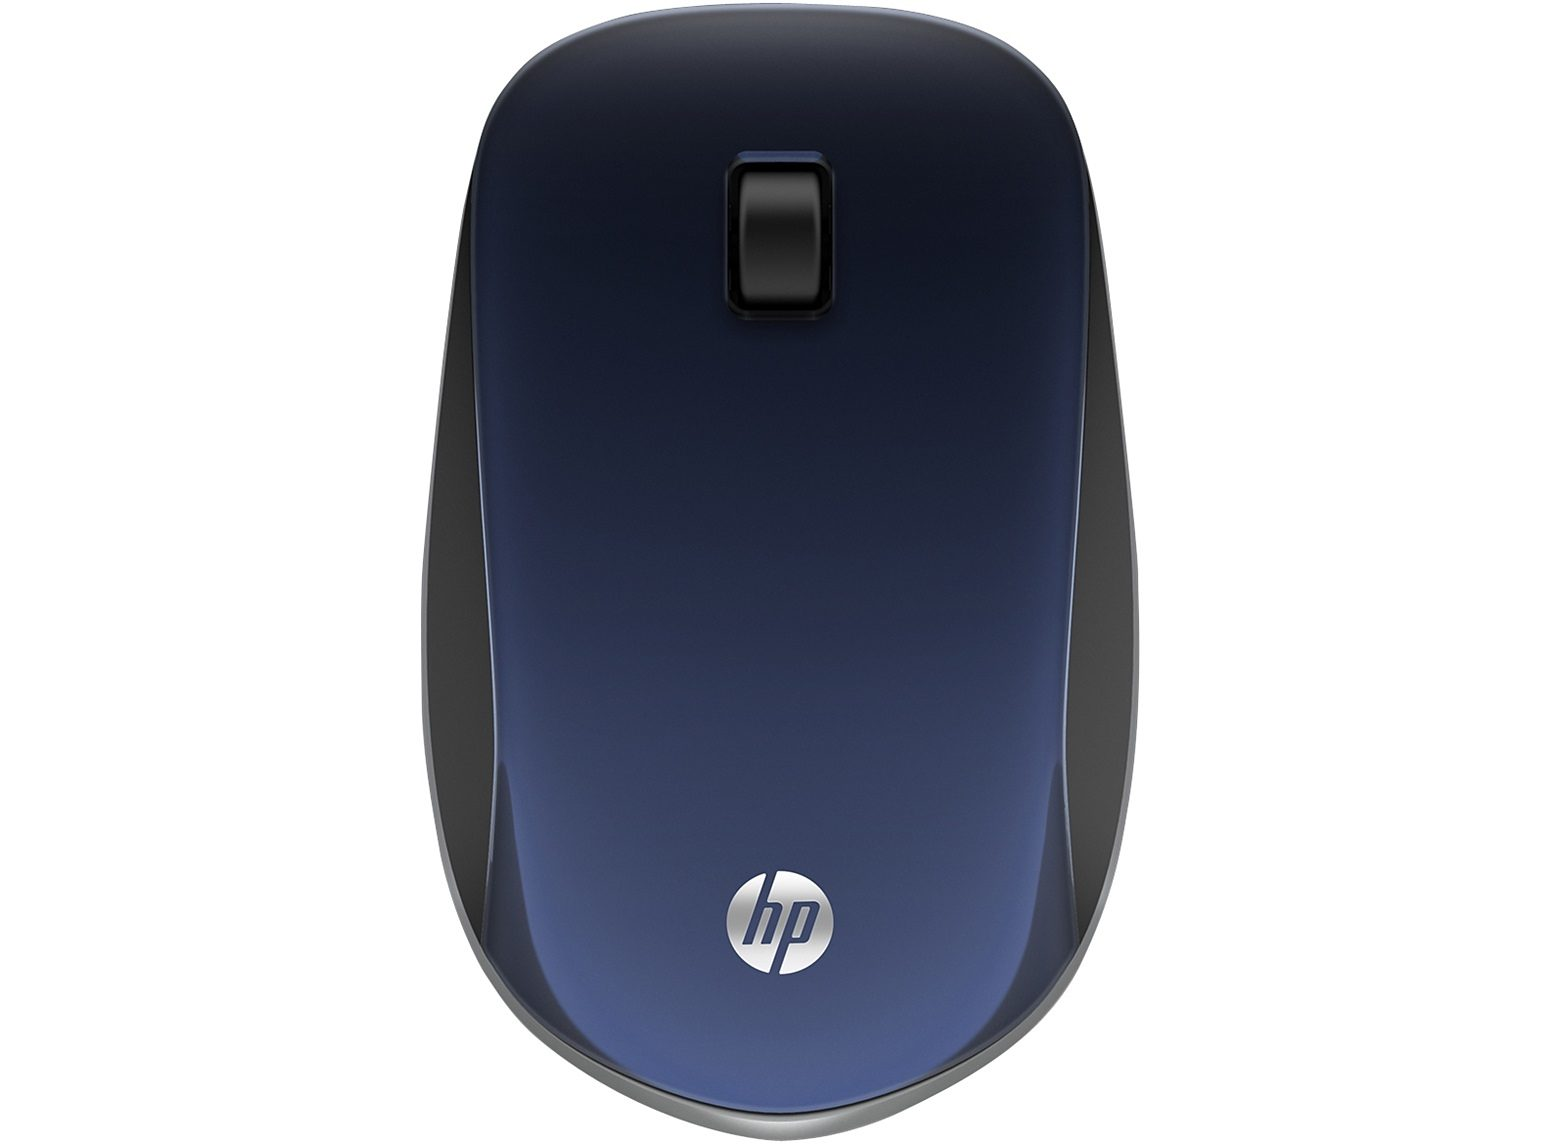 HP Maus »Z4000 Wireless-Maus blau«